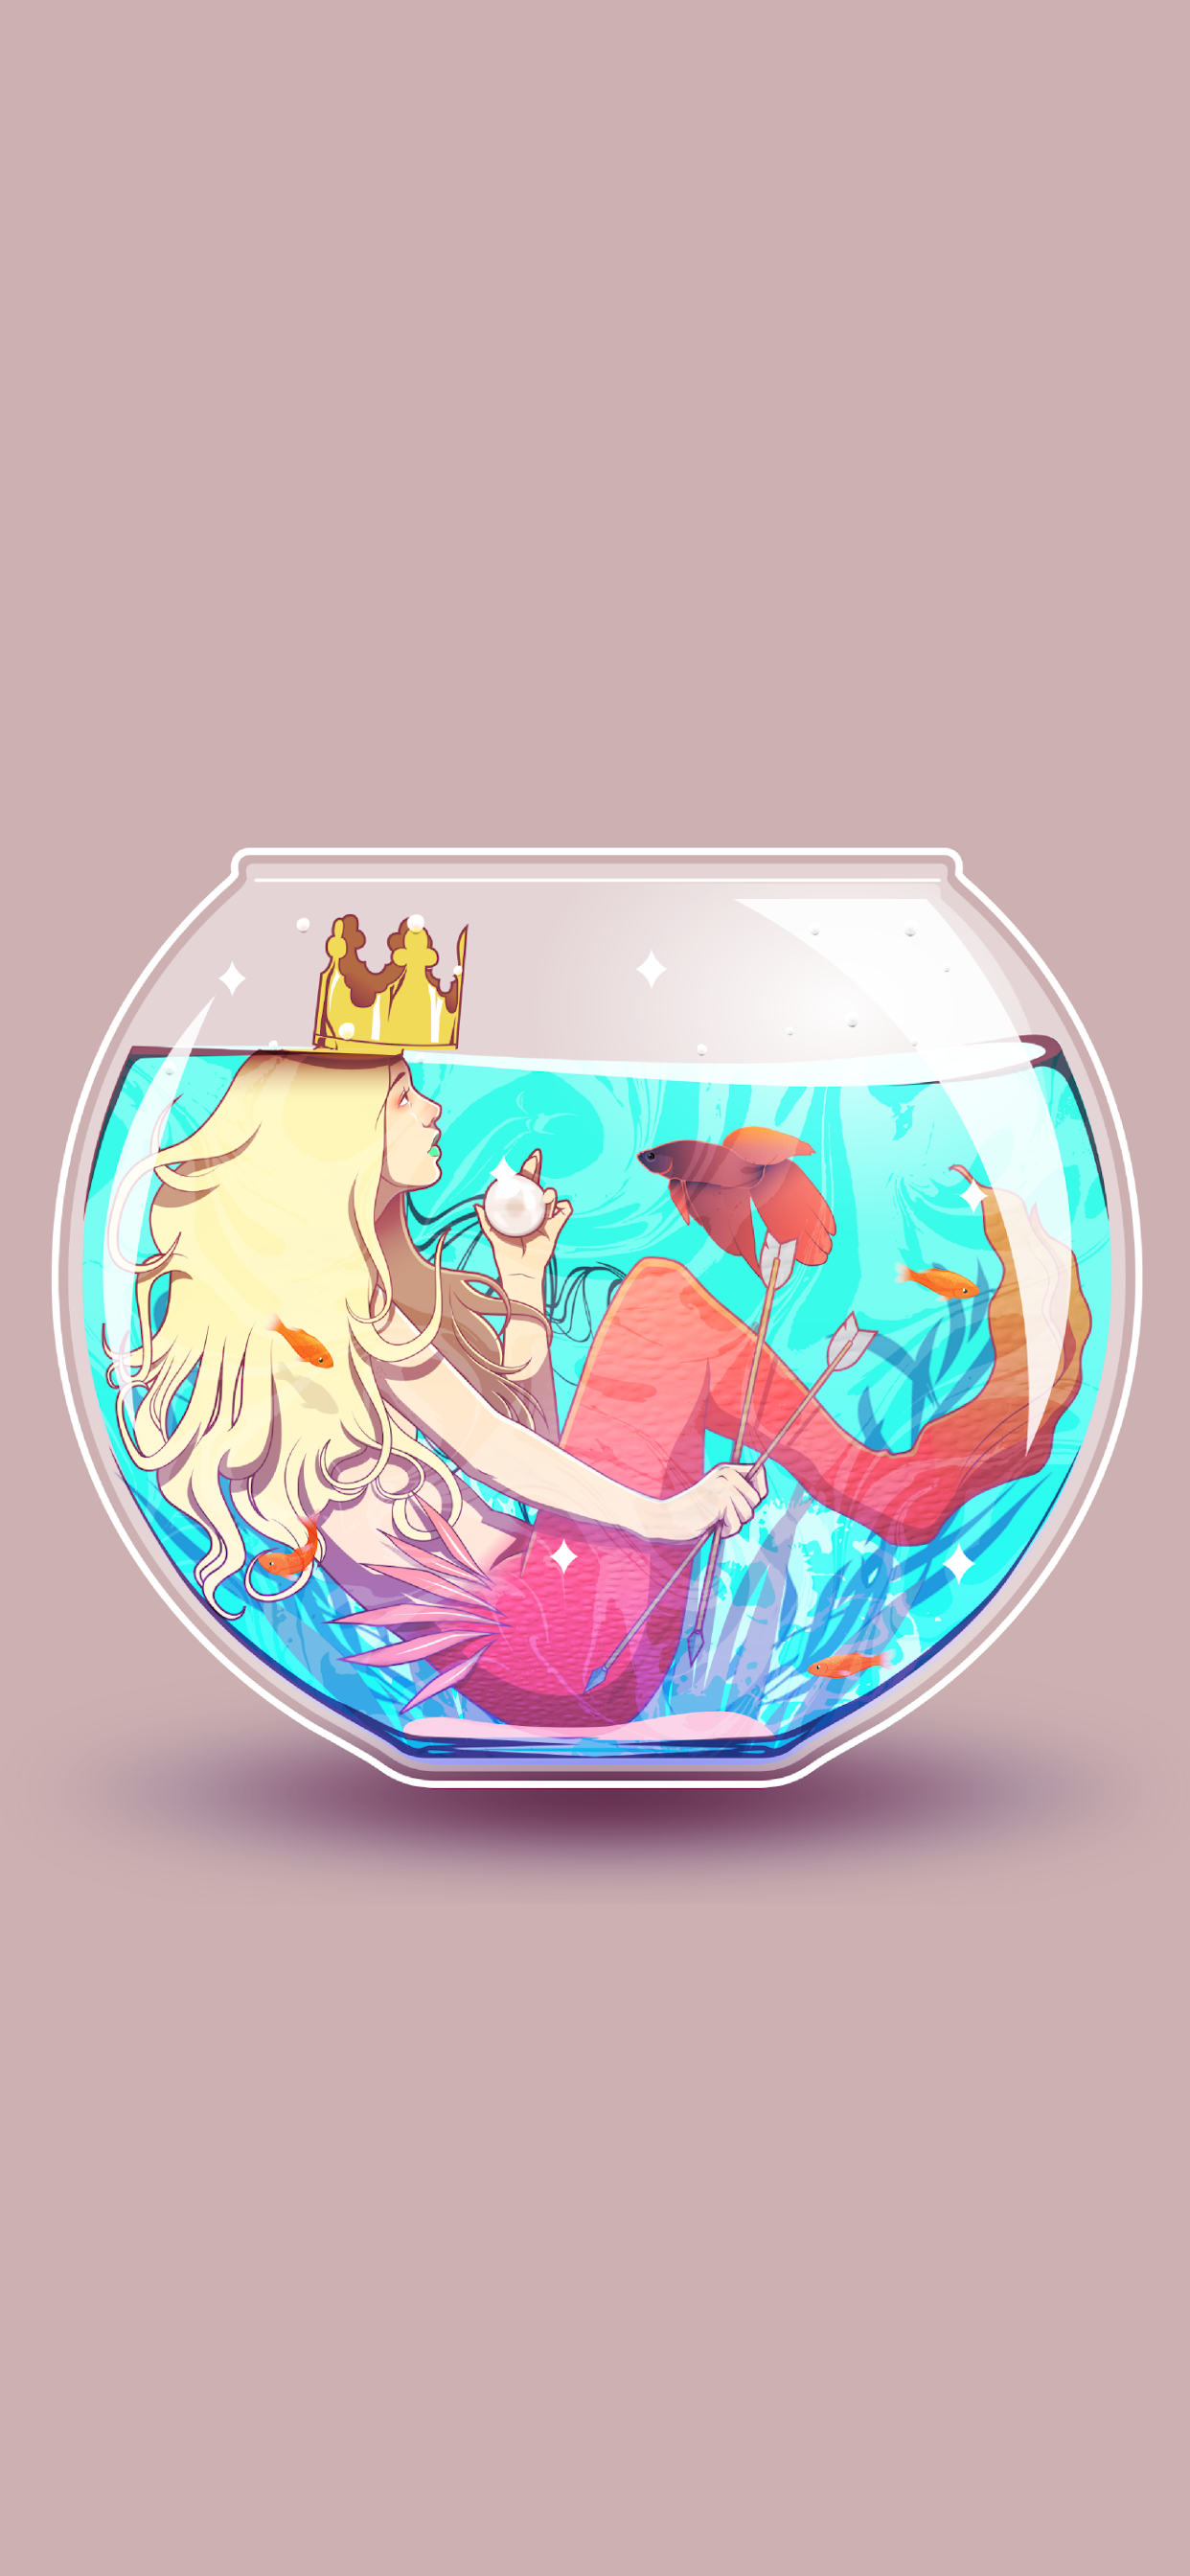 iPhone wallpapers illustration fishbowl Illustrations